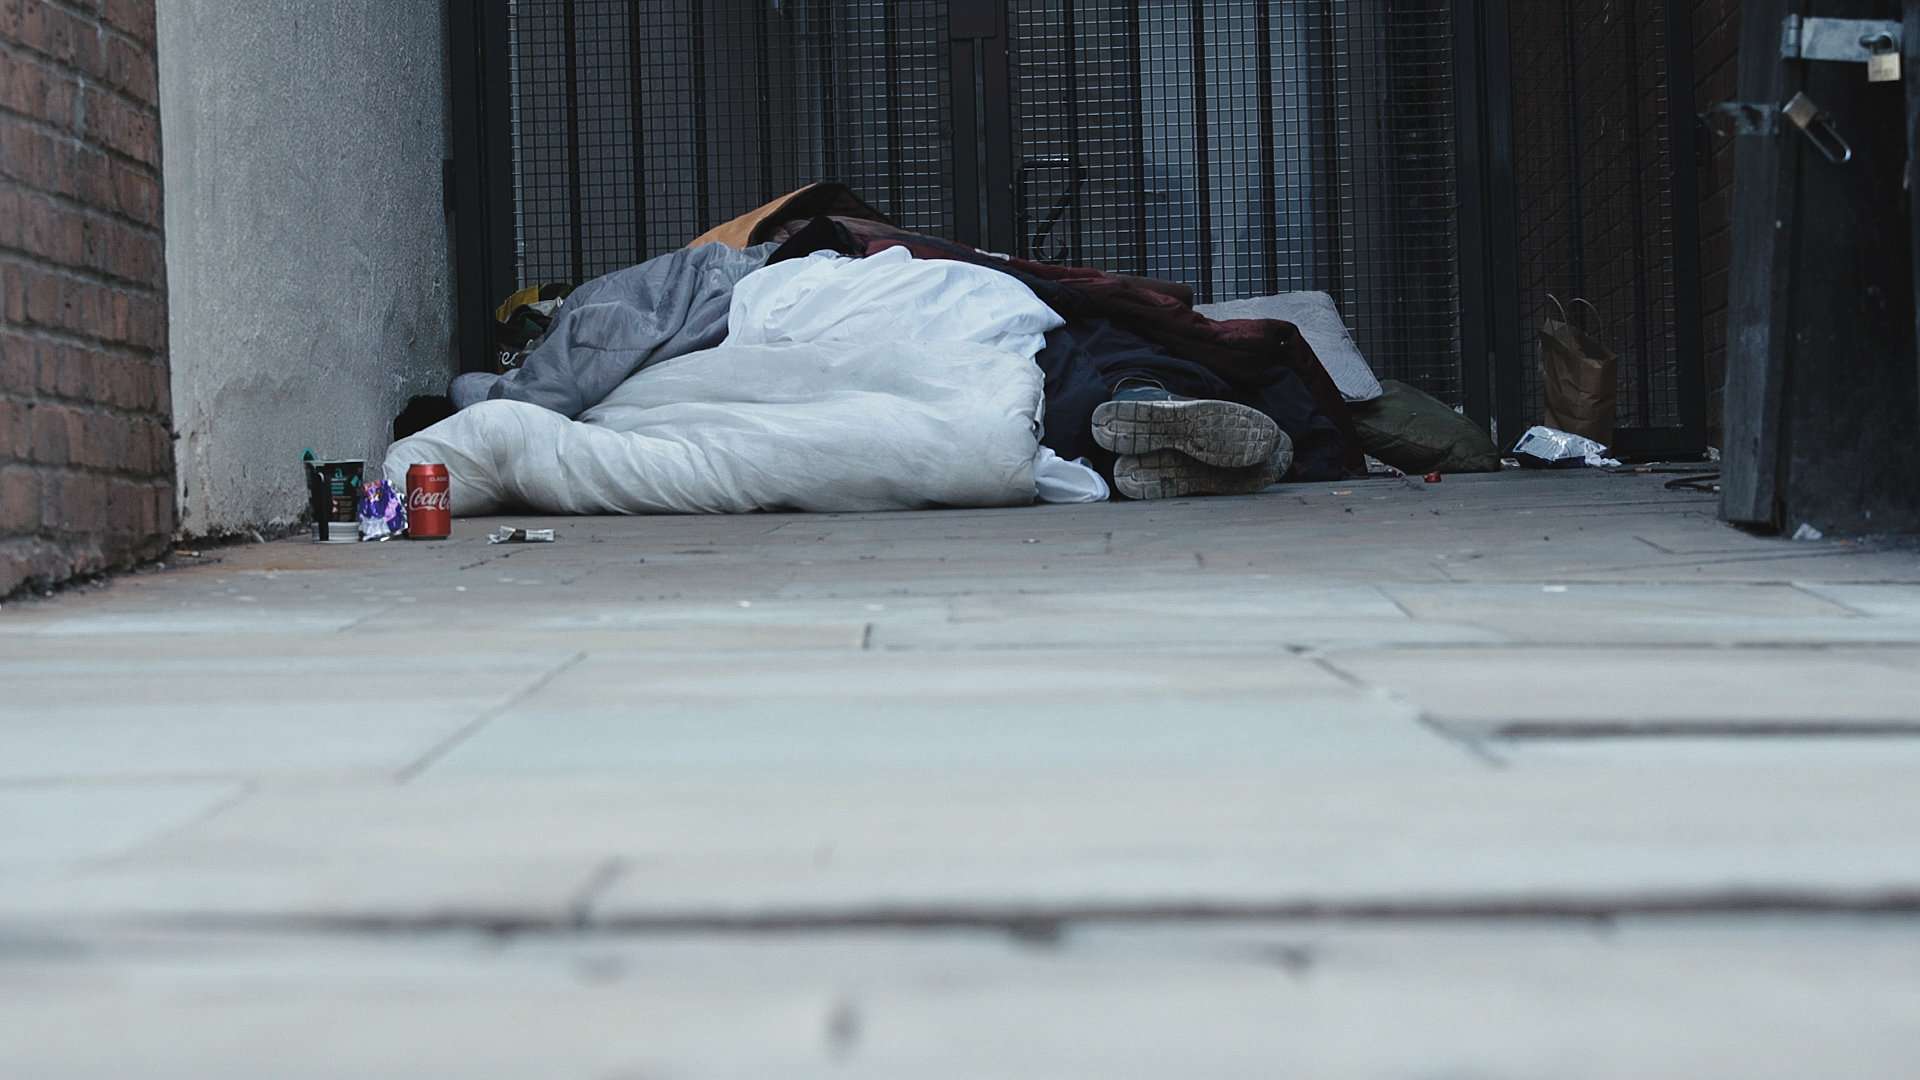 Homeless person in Manchester, spice capital of the UK